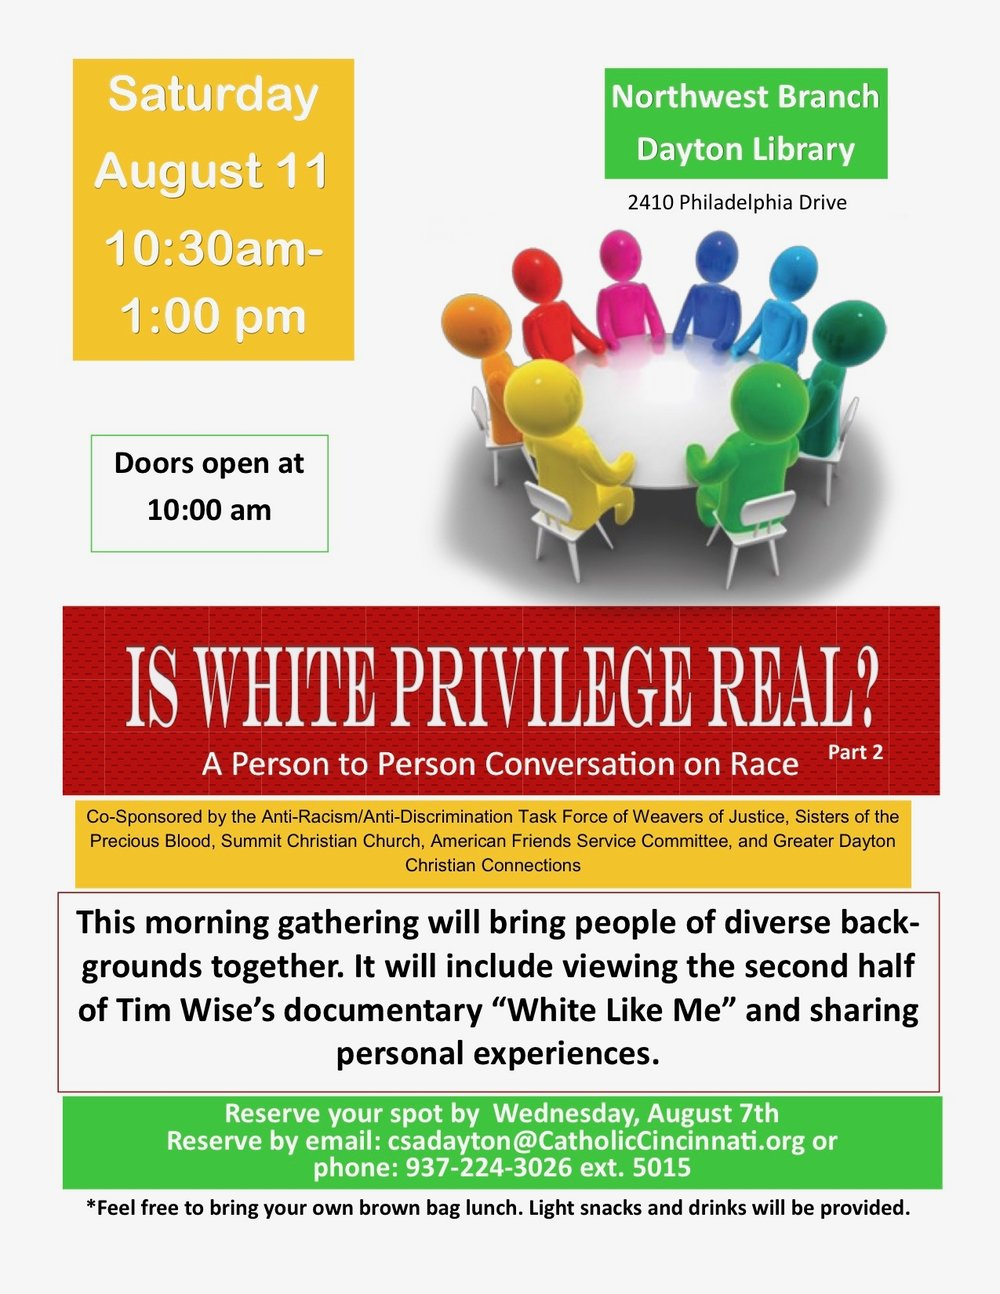 Is White Privilege Real part2 flier.jpg